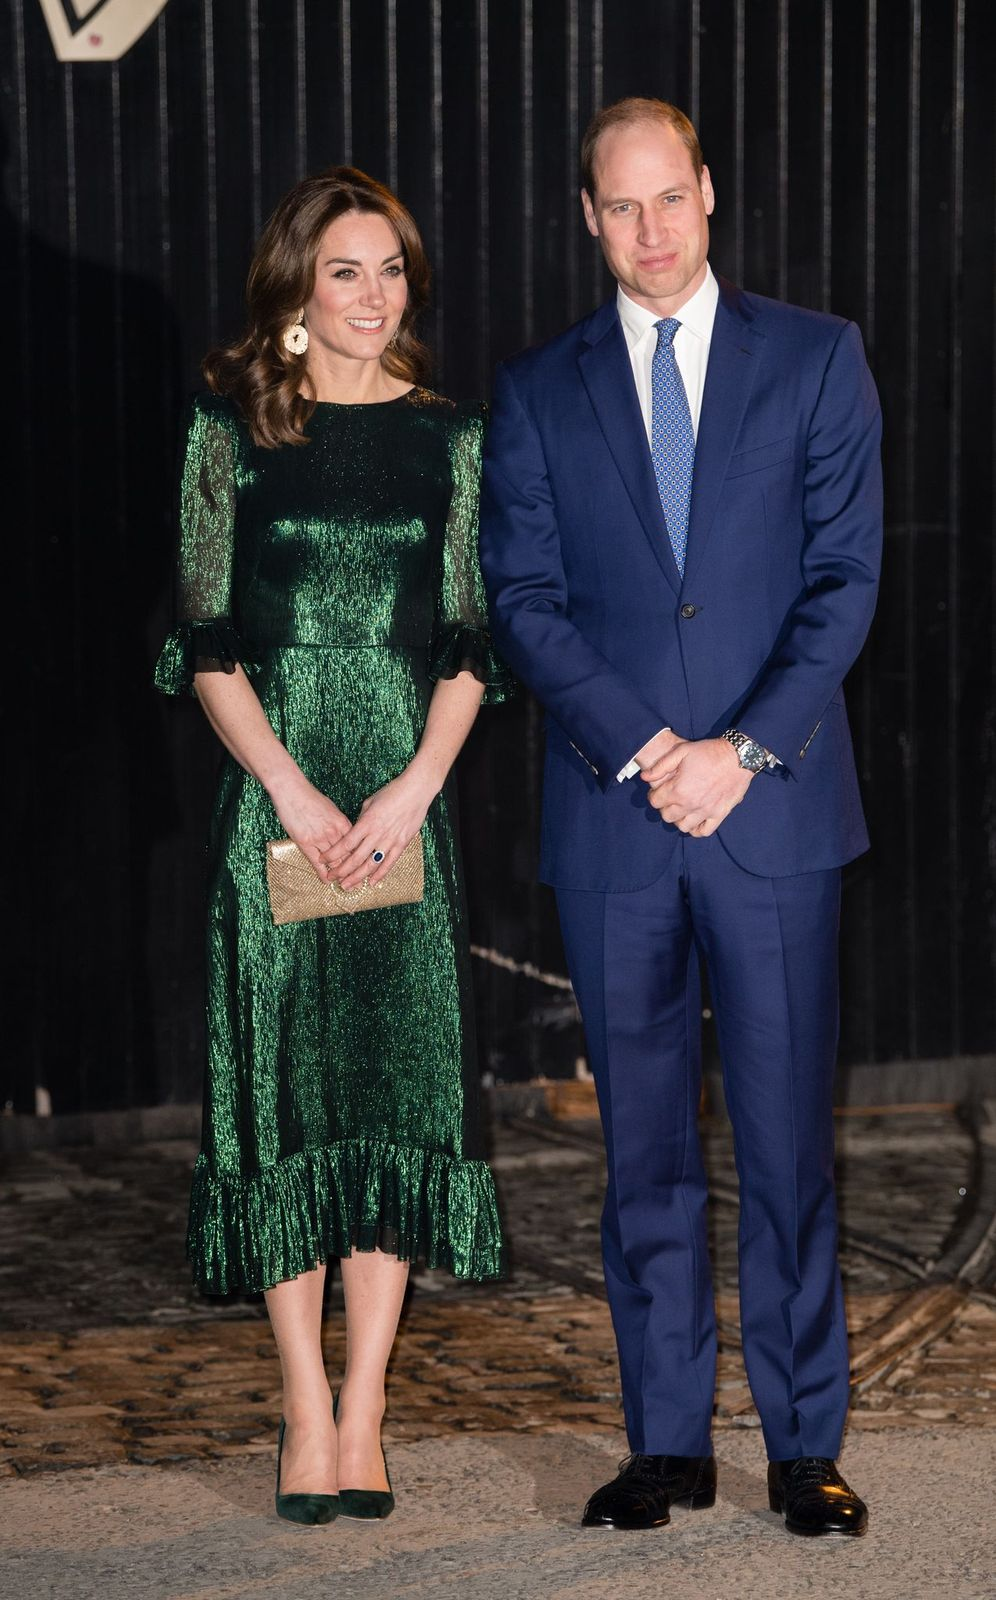 Kate Middleton and Prince William at the Guinness Storehouse's Gravity Bar during day one of their visit to Ireland on March 03, 2020 | Photo: Getty Images